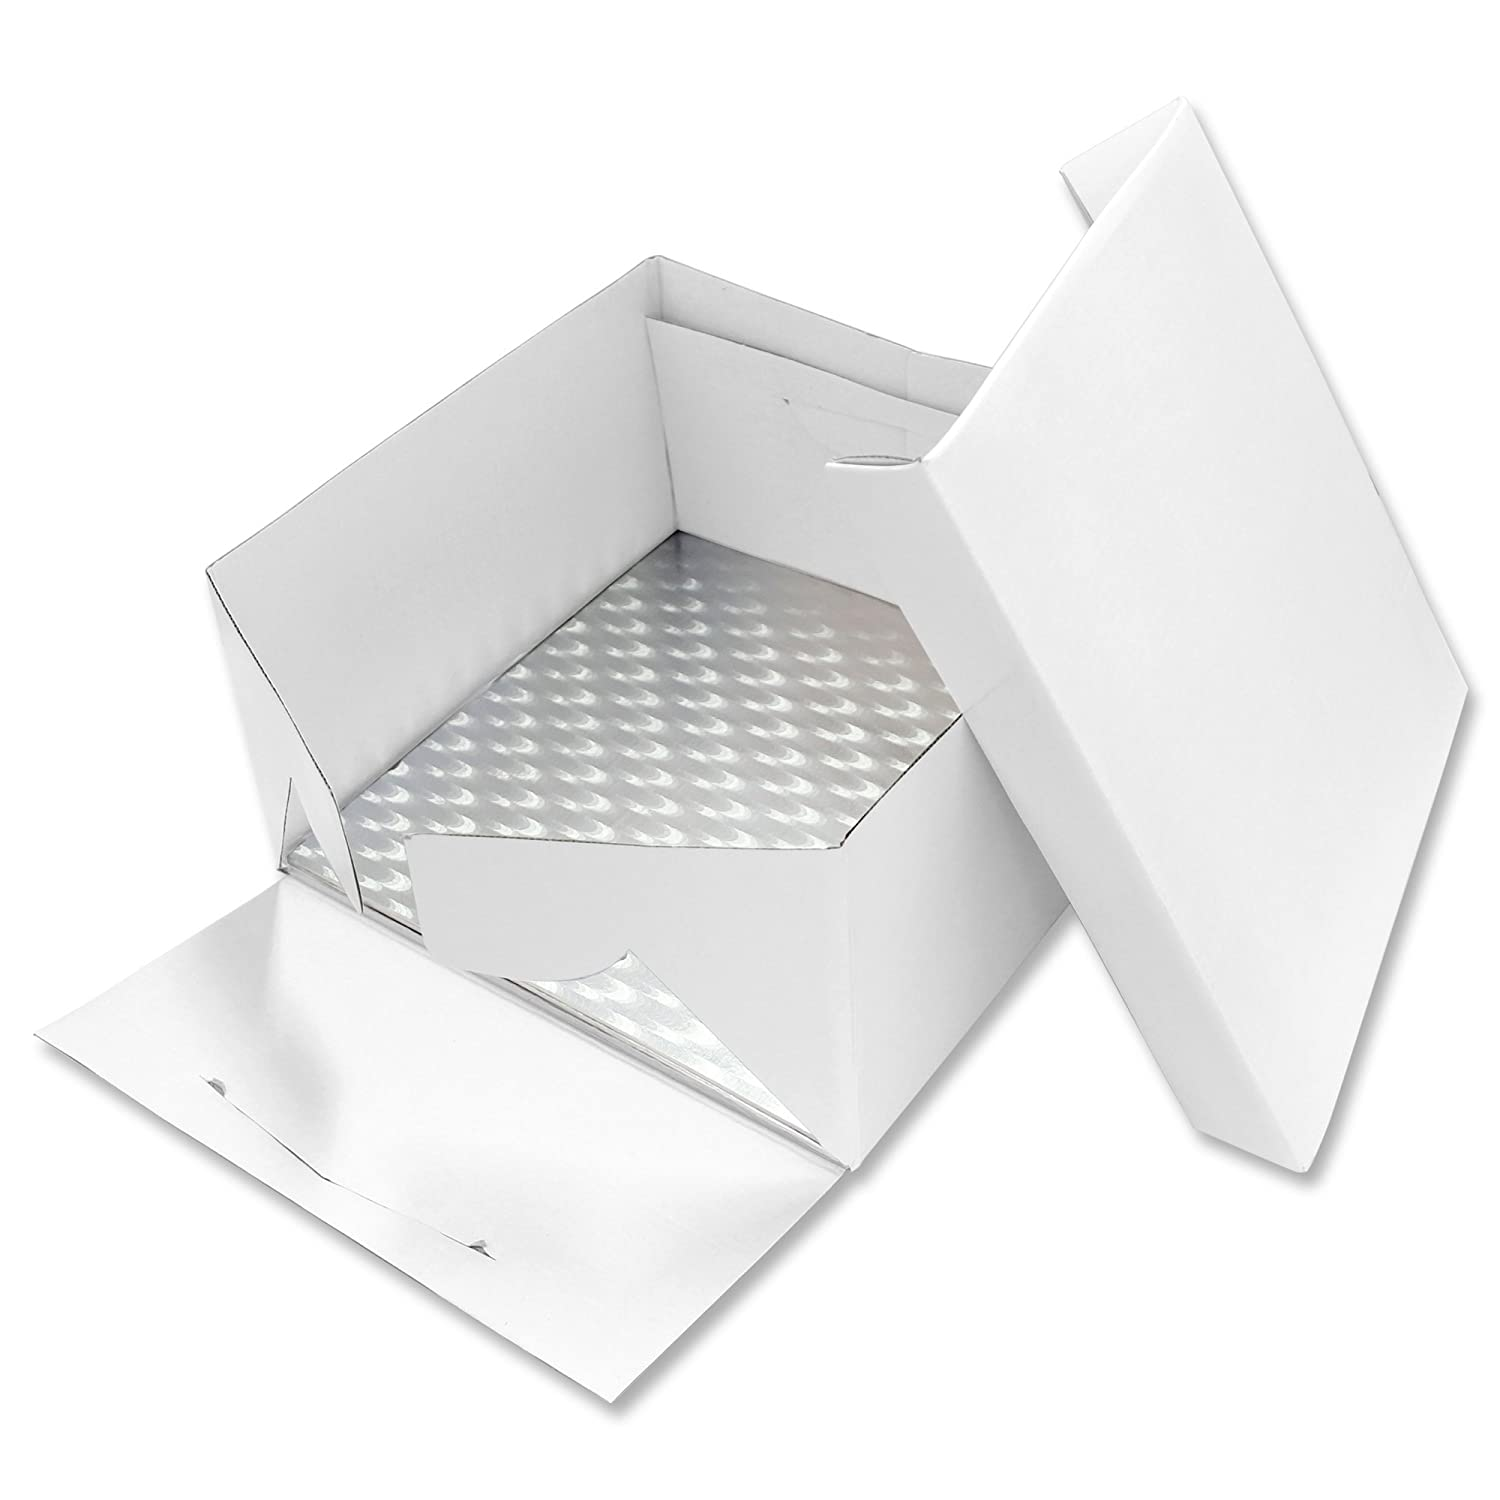 PME BBS887 Drum/Board (0.4in Thick) & Square Cake Box 9in x 6in high, Standard, White